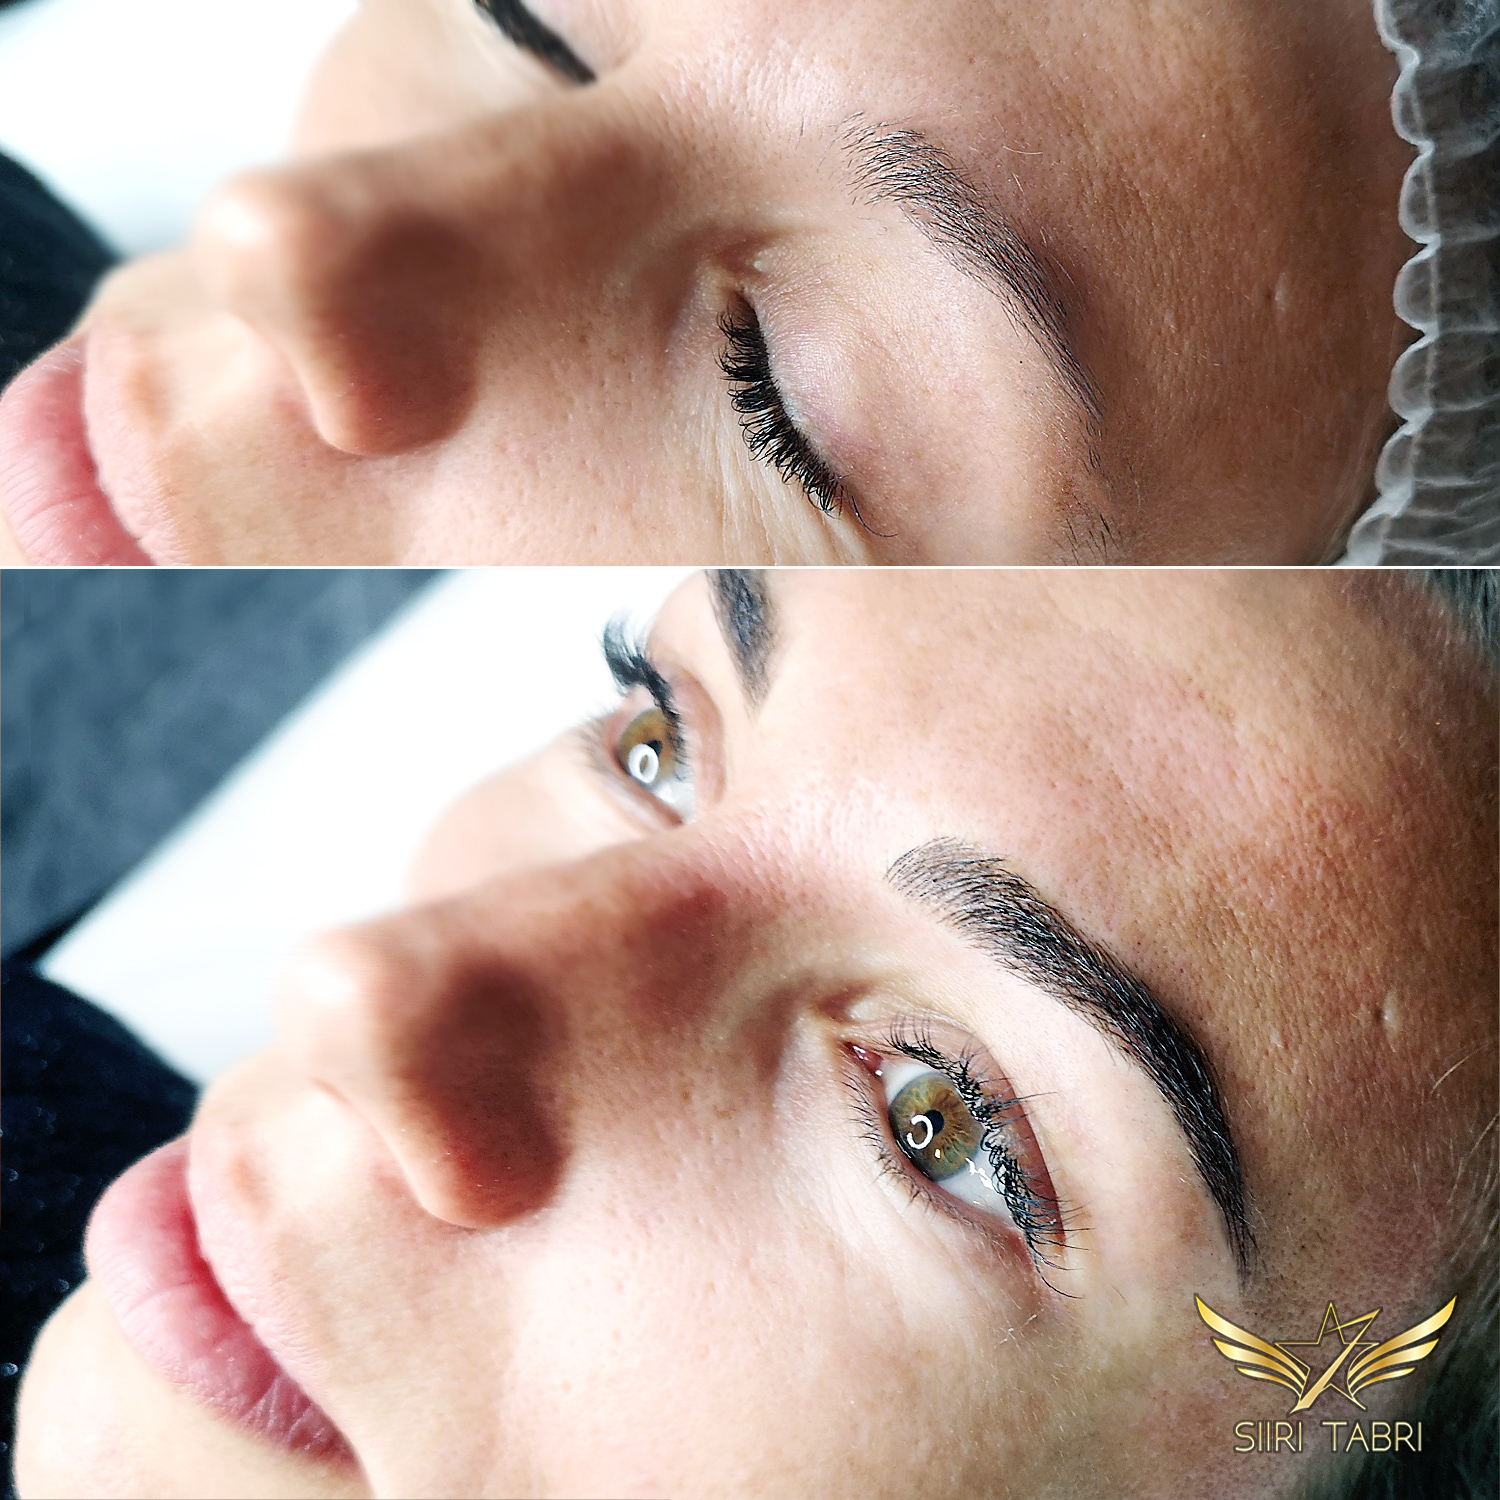 Light microblading. Just another change with Light microblading.